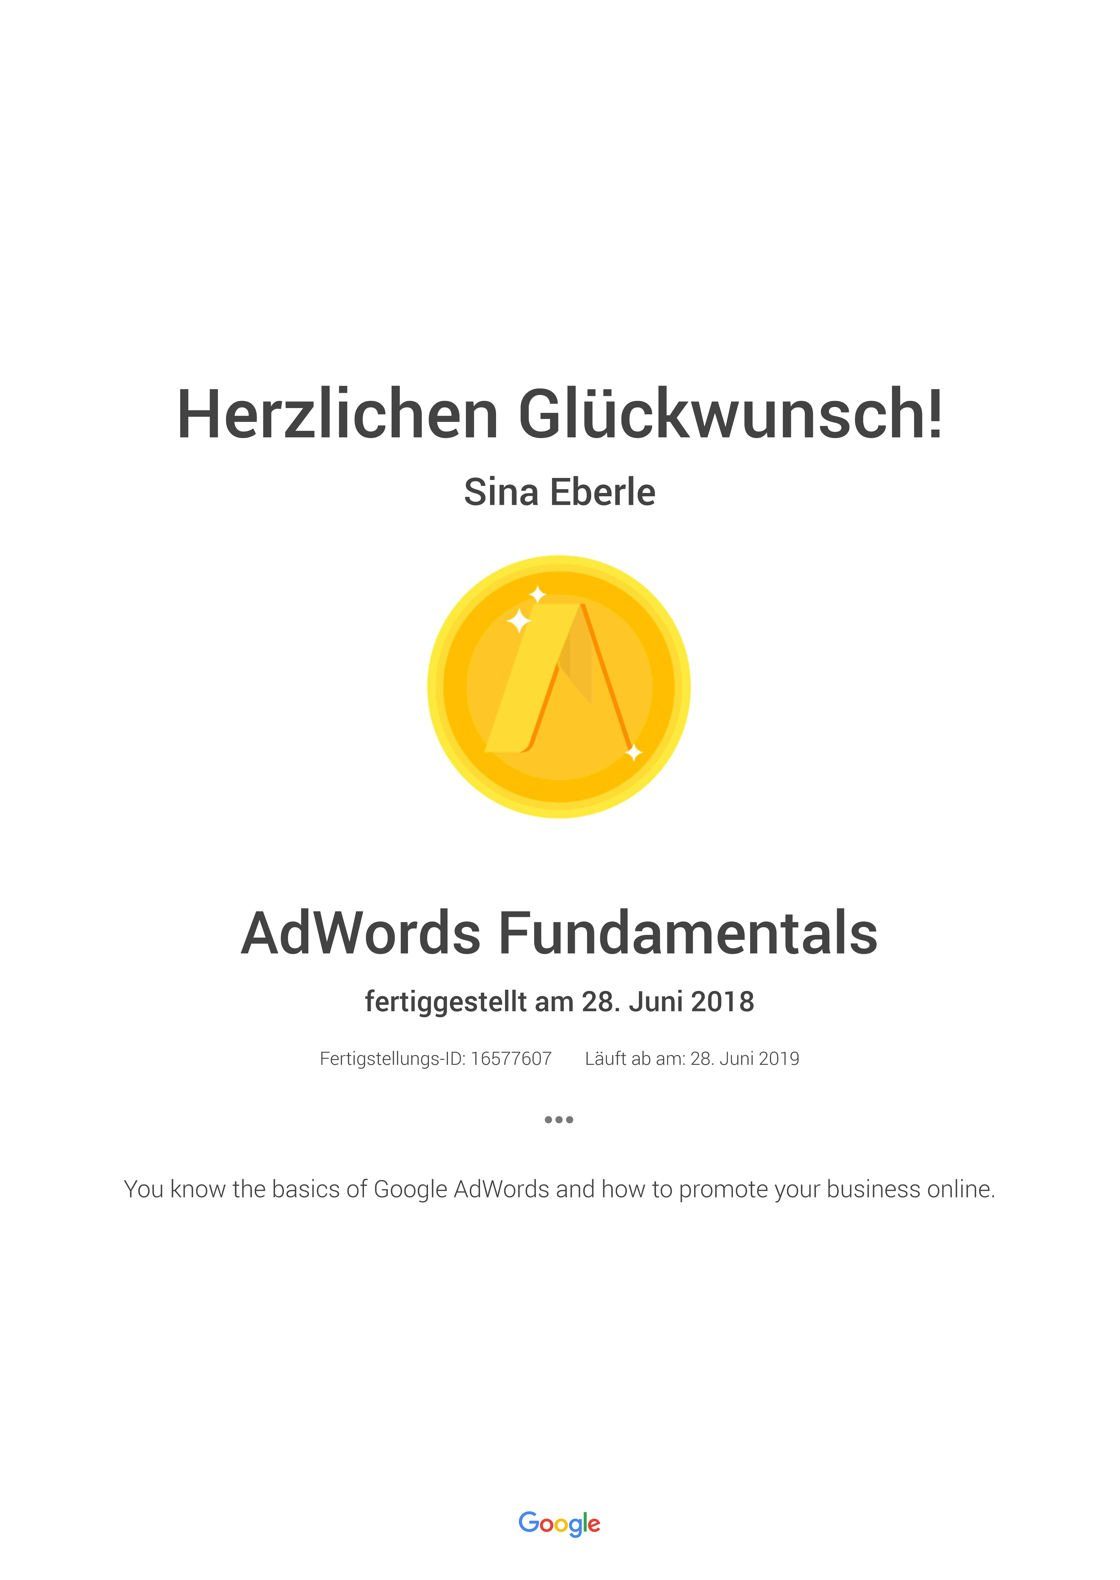 Google Zertifikat AdWords Fundamentals- Academy for Ads